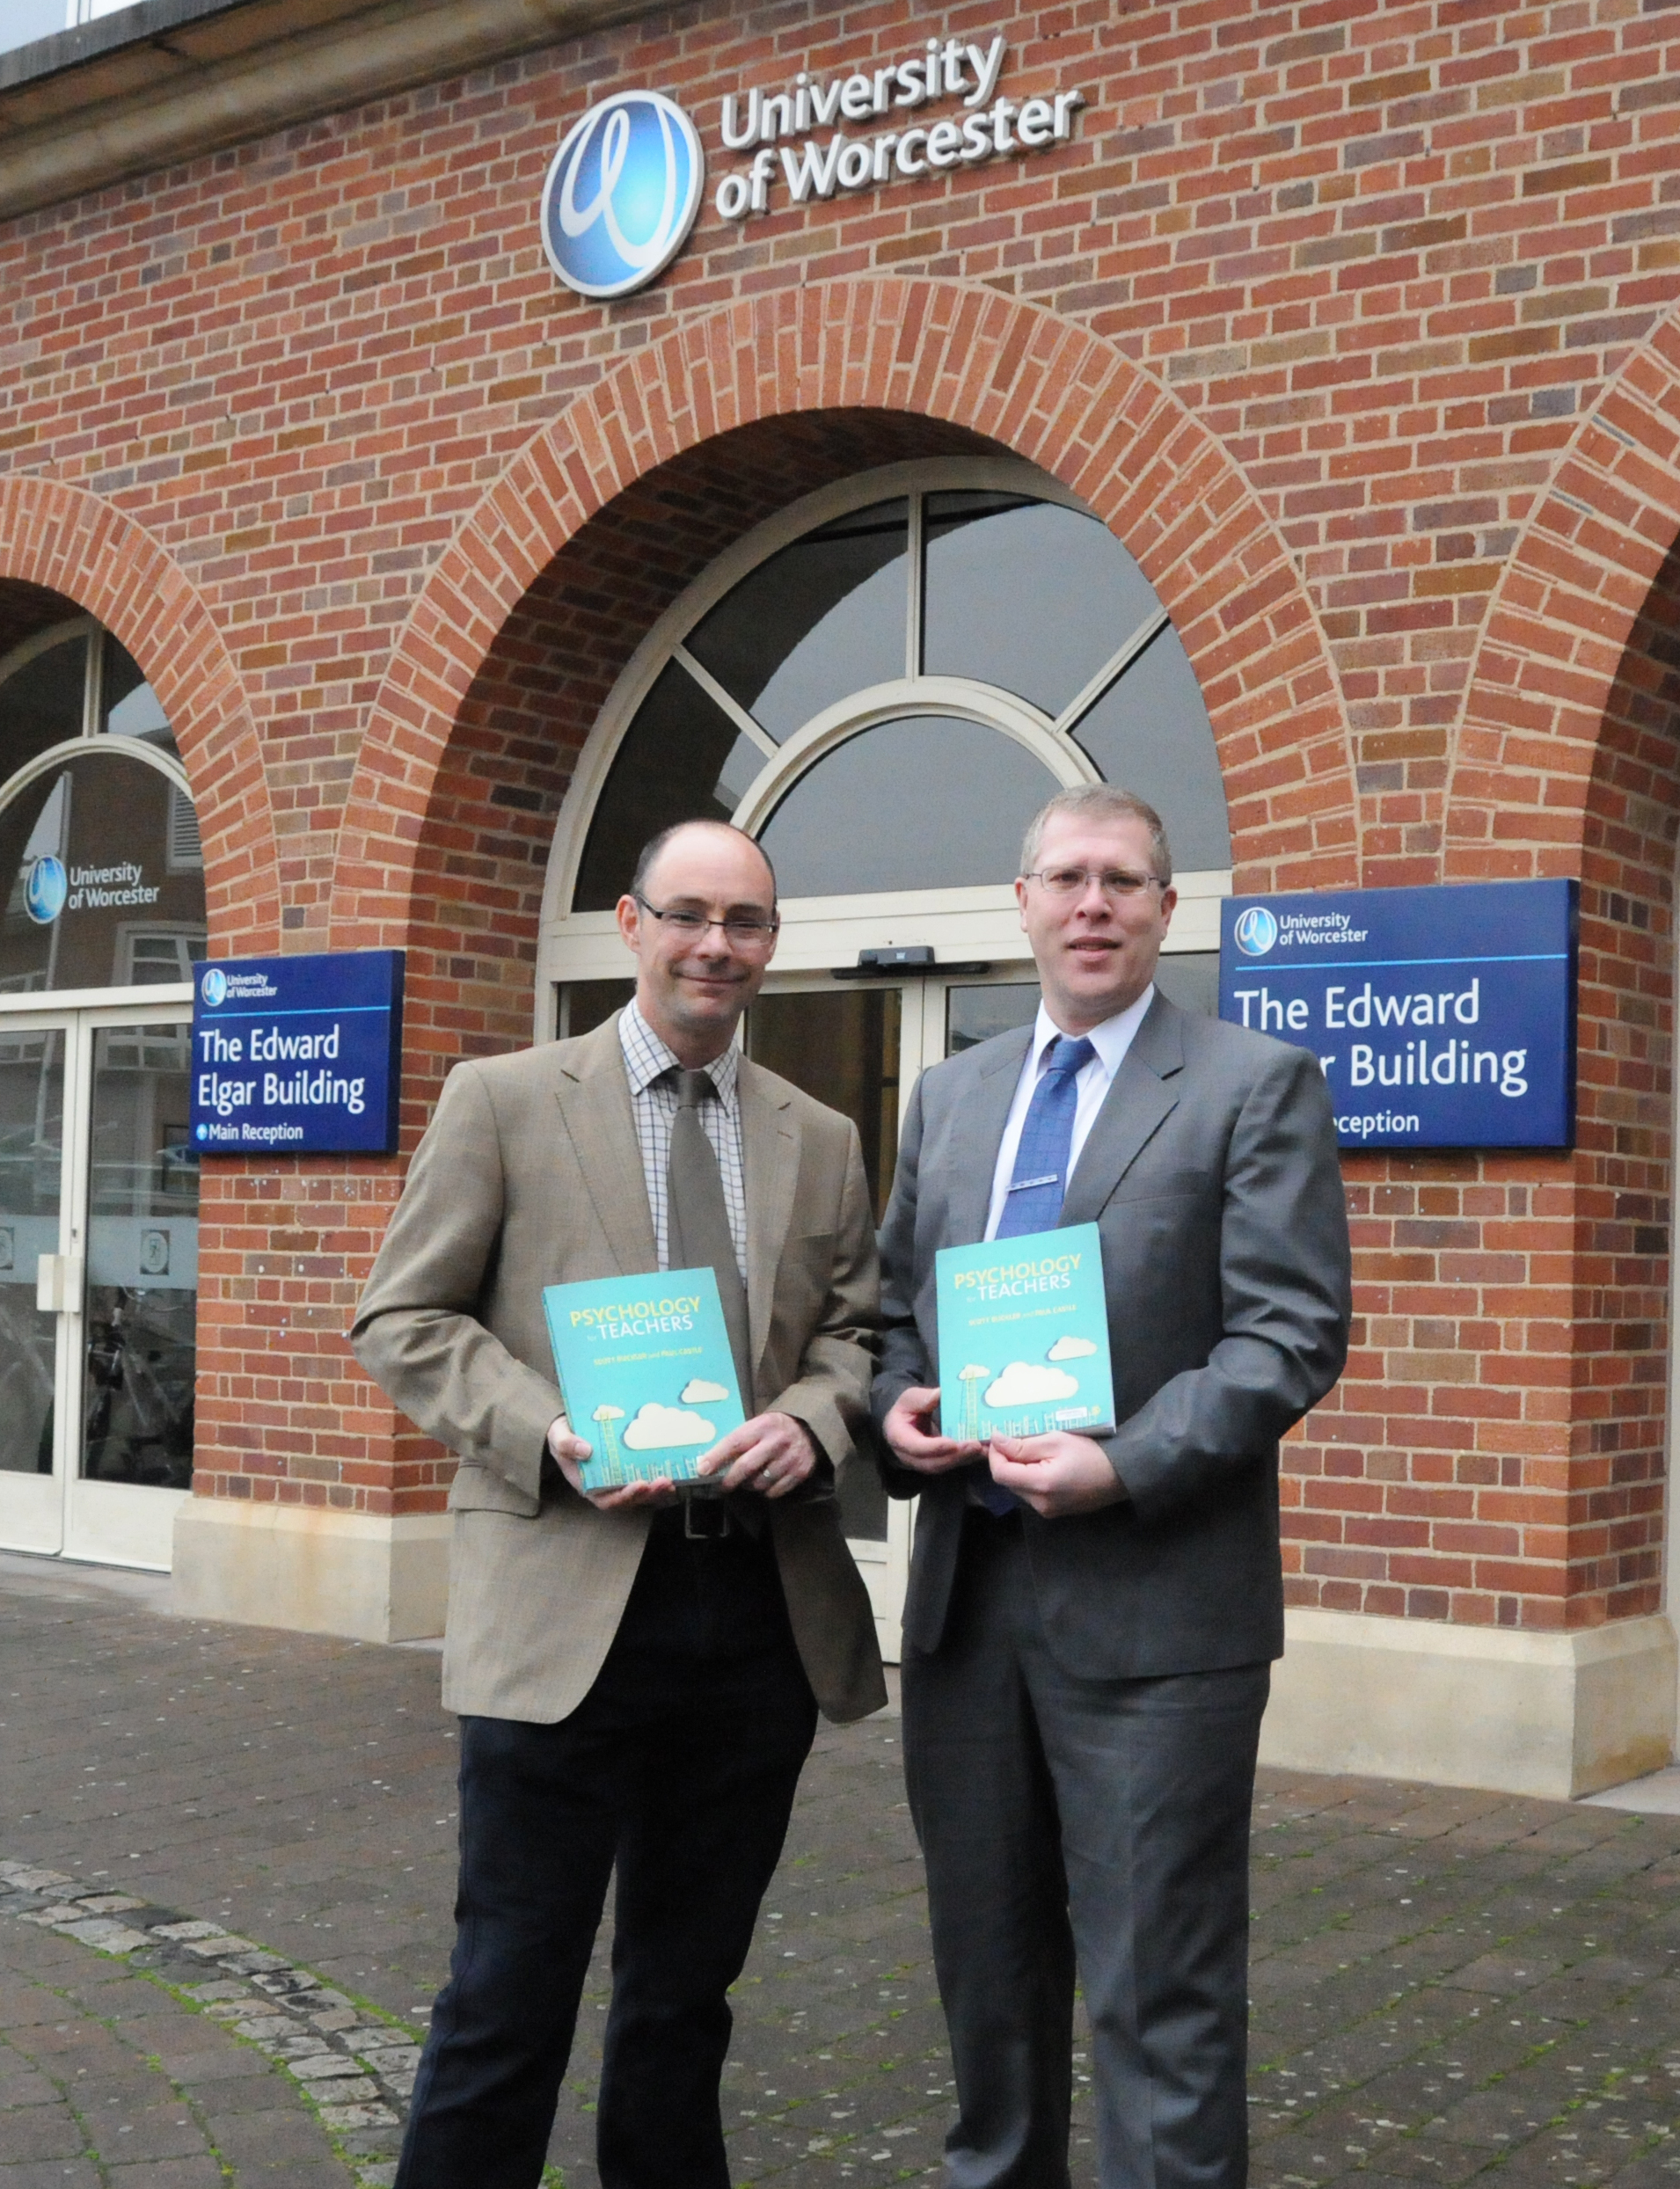 MUST READ: A new book from Dr Castle and Dr Buckler from the University of Worcester has been praised.